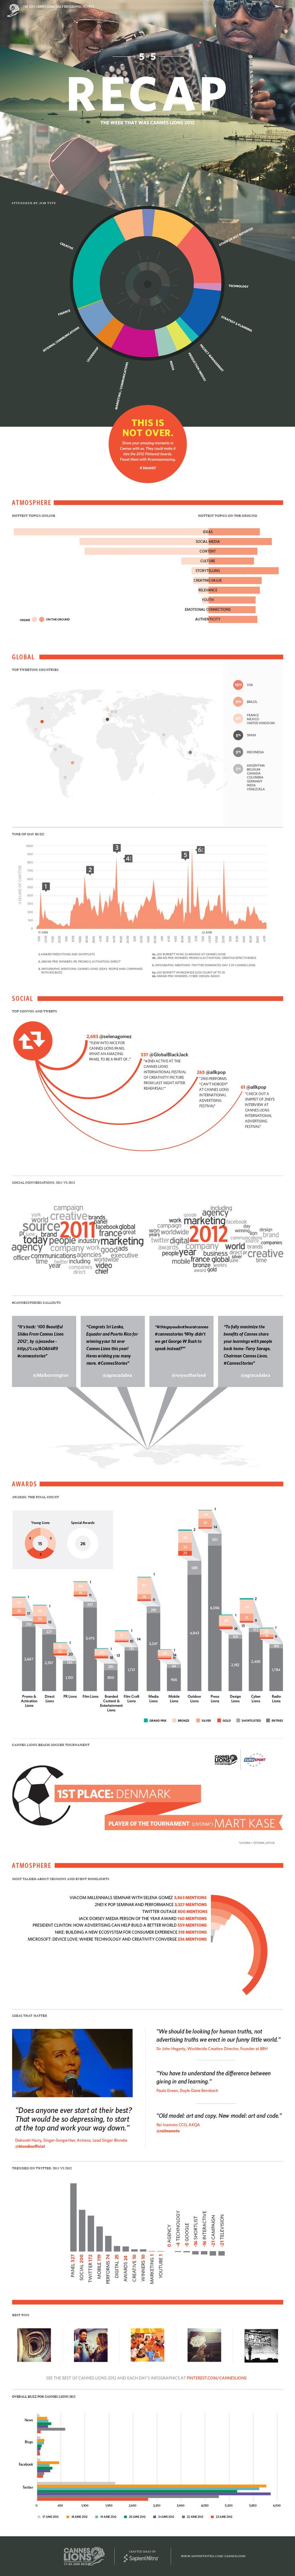 The 2012 Cannes Lions Daily Infographic Project: The Week That Was Cannes Lions 2012. Created daily by @SapientNitro -